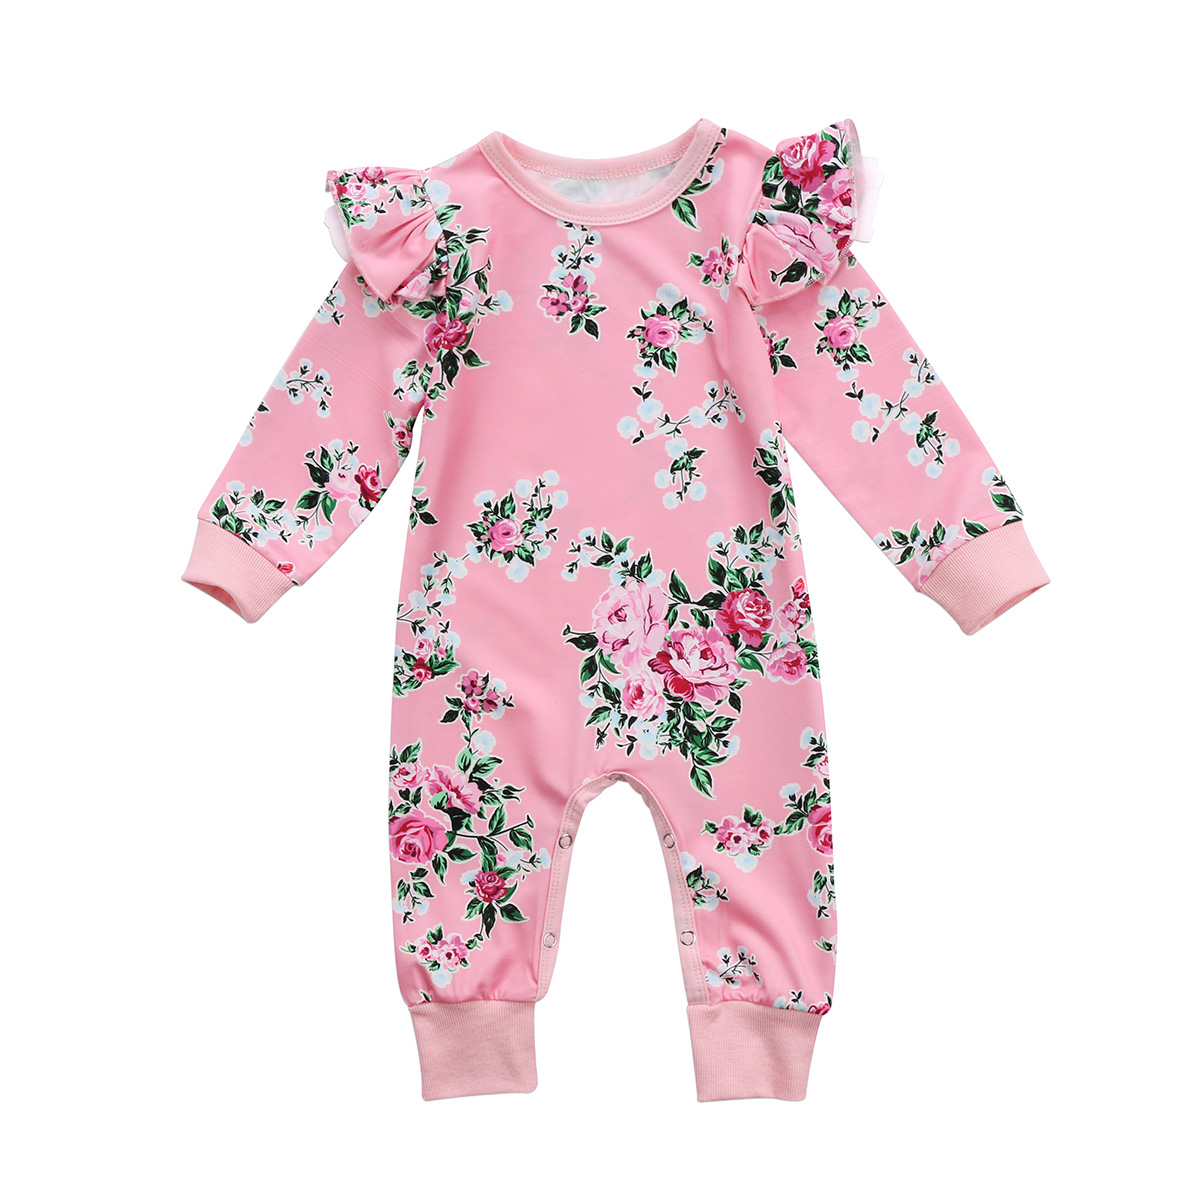 Adorable Kids Baby Girls Floral Ruffle Long Sleeves Romper One Piece Cotton Clothes Outfits 6M-4T